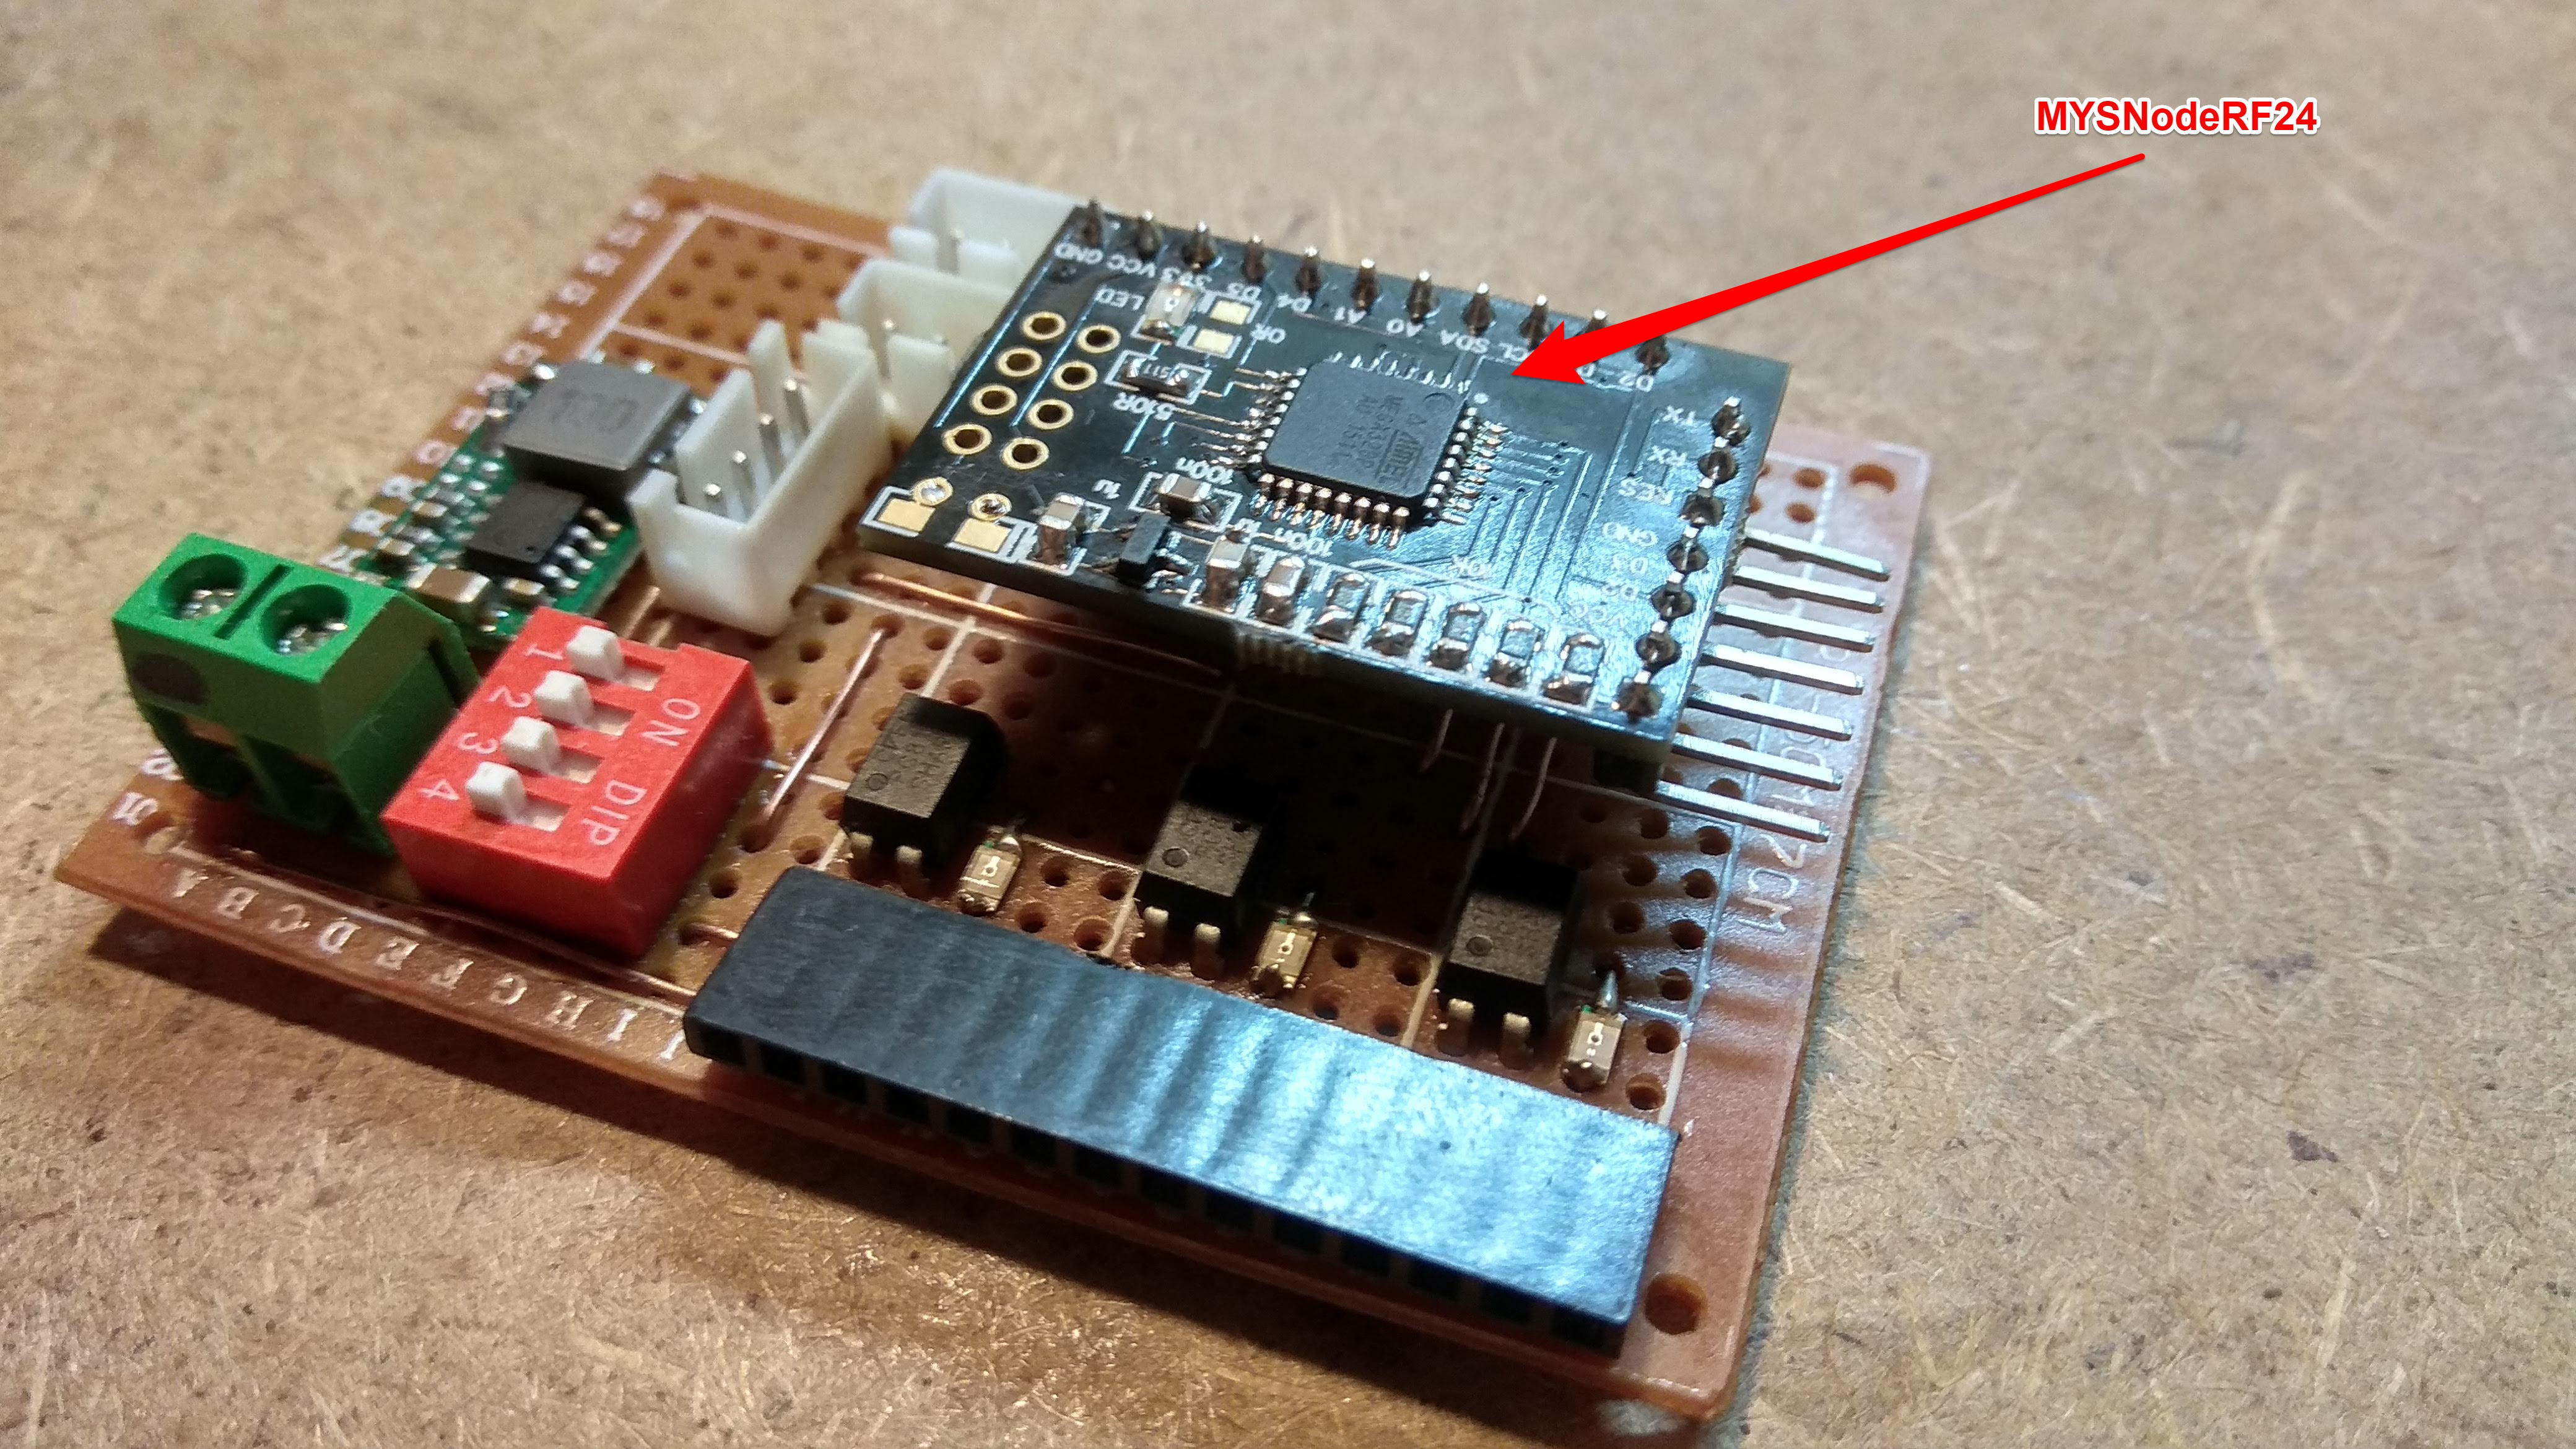 ALARM module with RF24 node